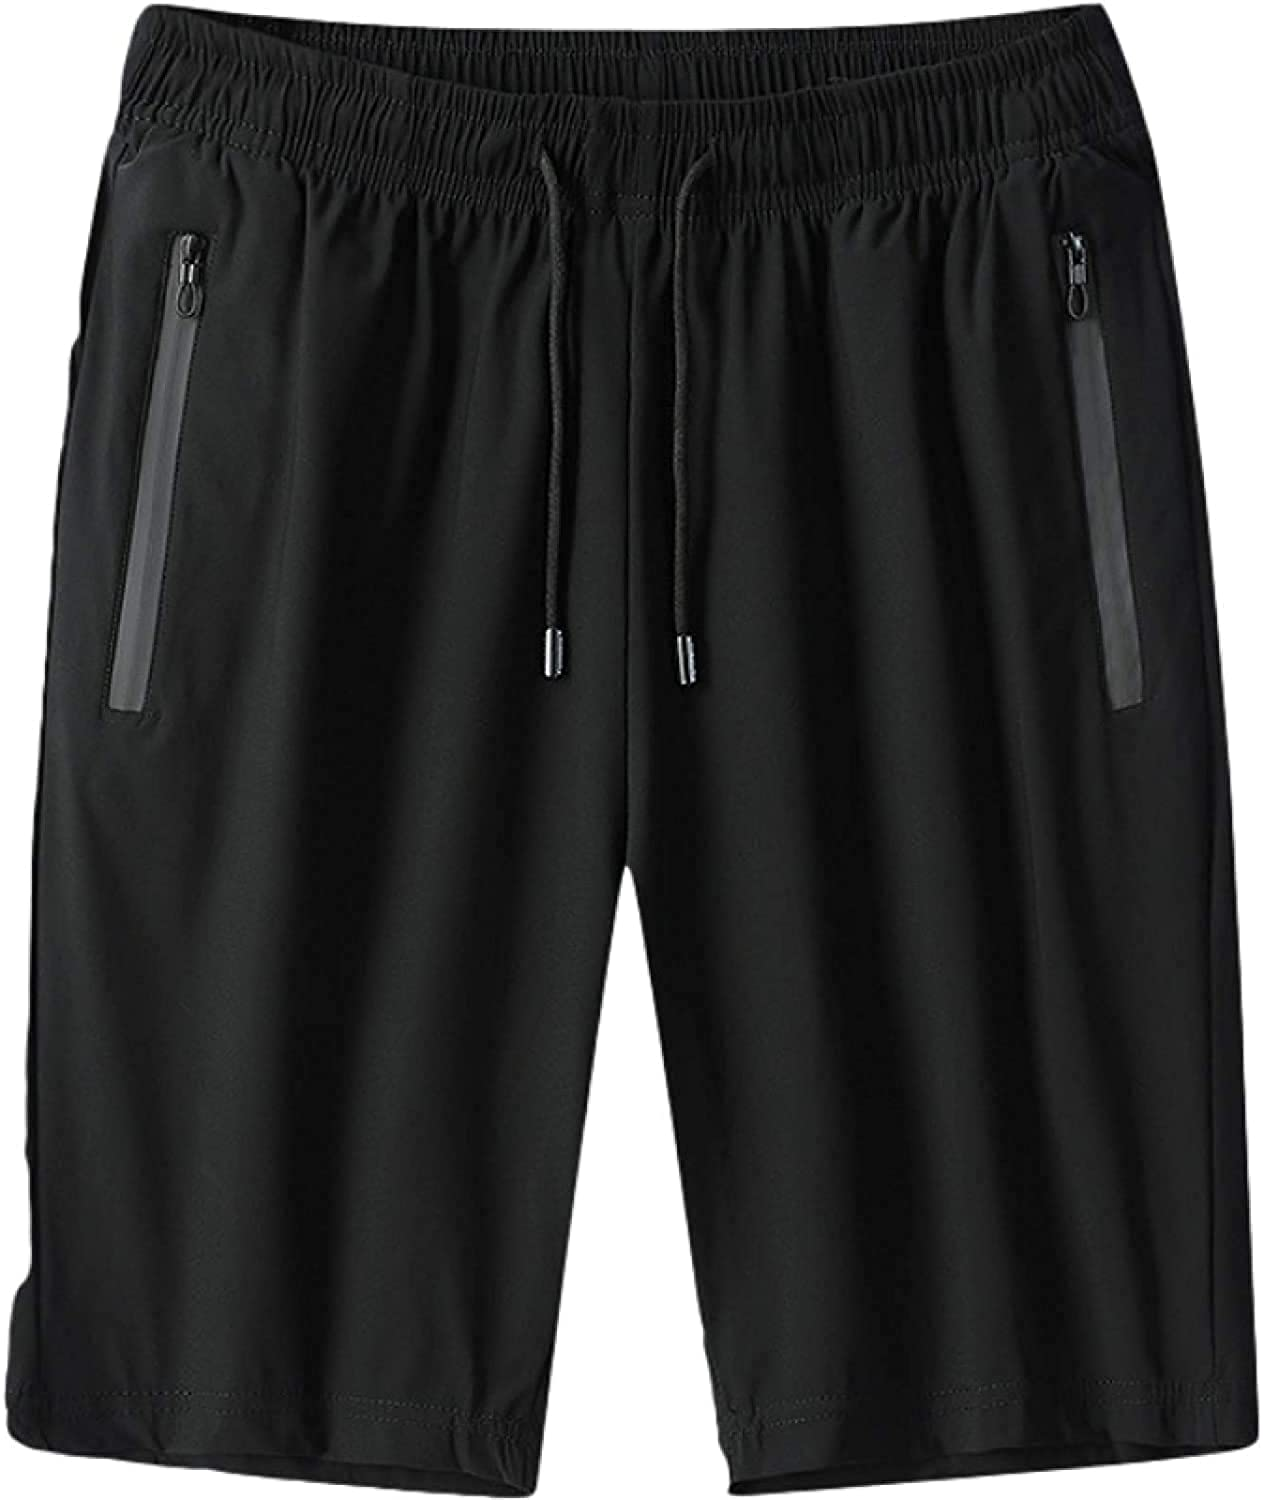 Andrea Spence Men's Summer Cheap SALE Start Thin Loose Louisville-Jefferson County Mall Fashion Breathable Shorts